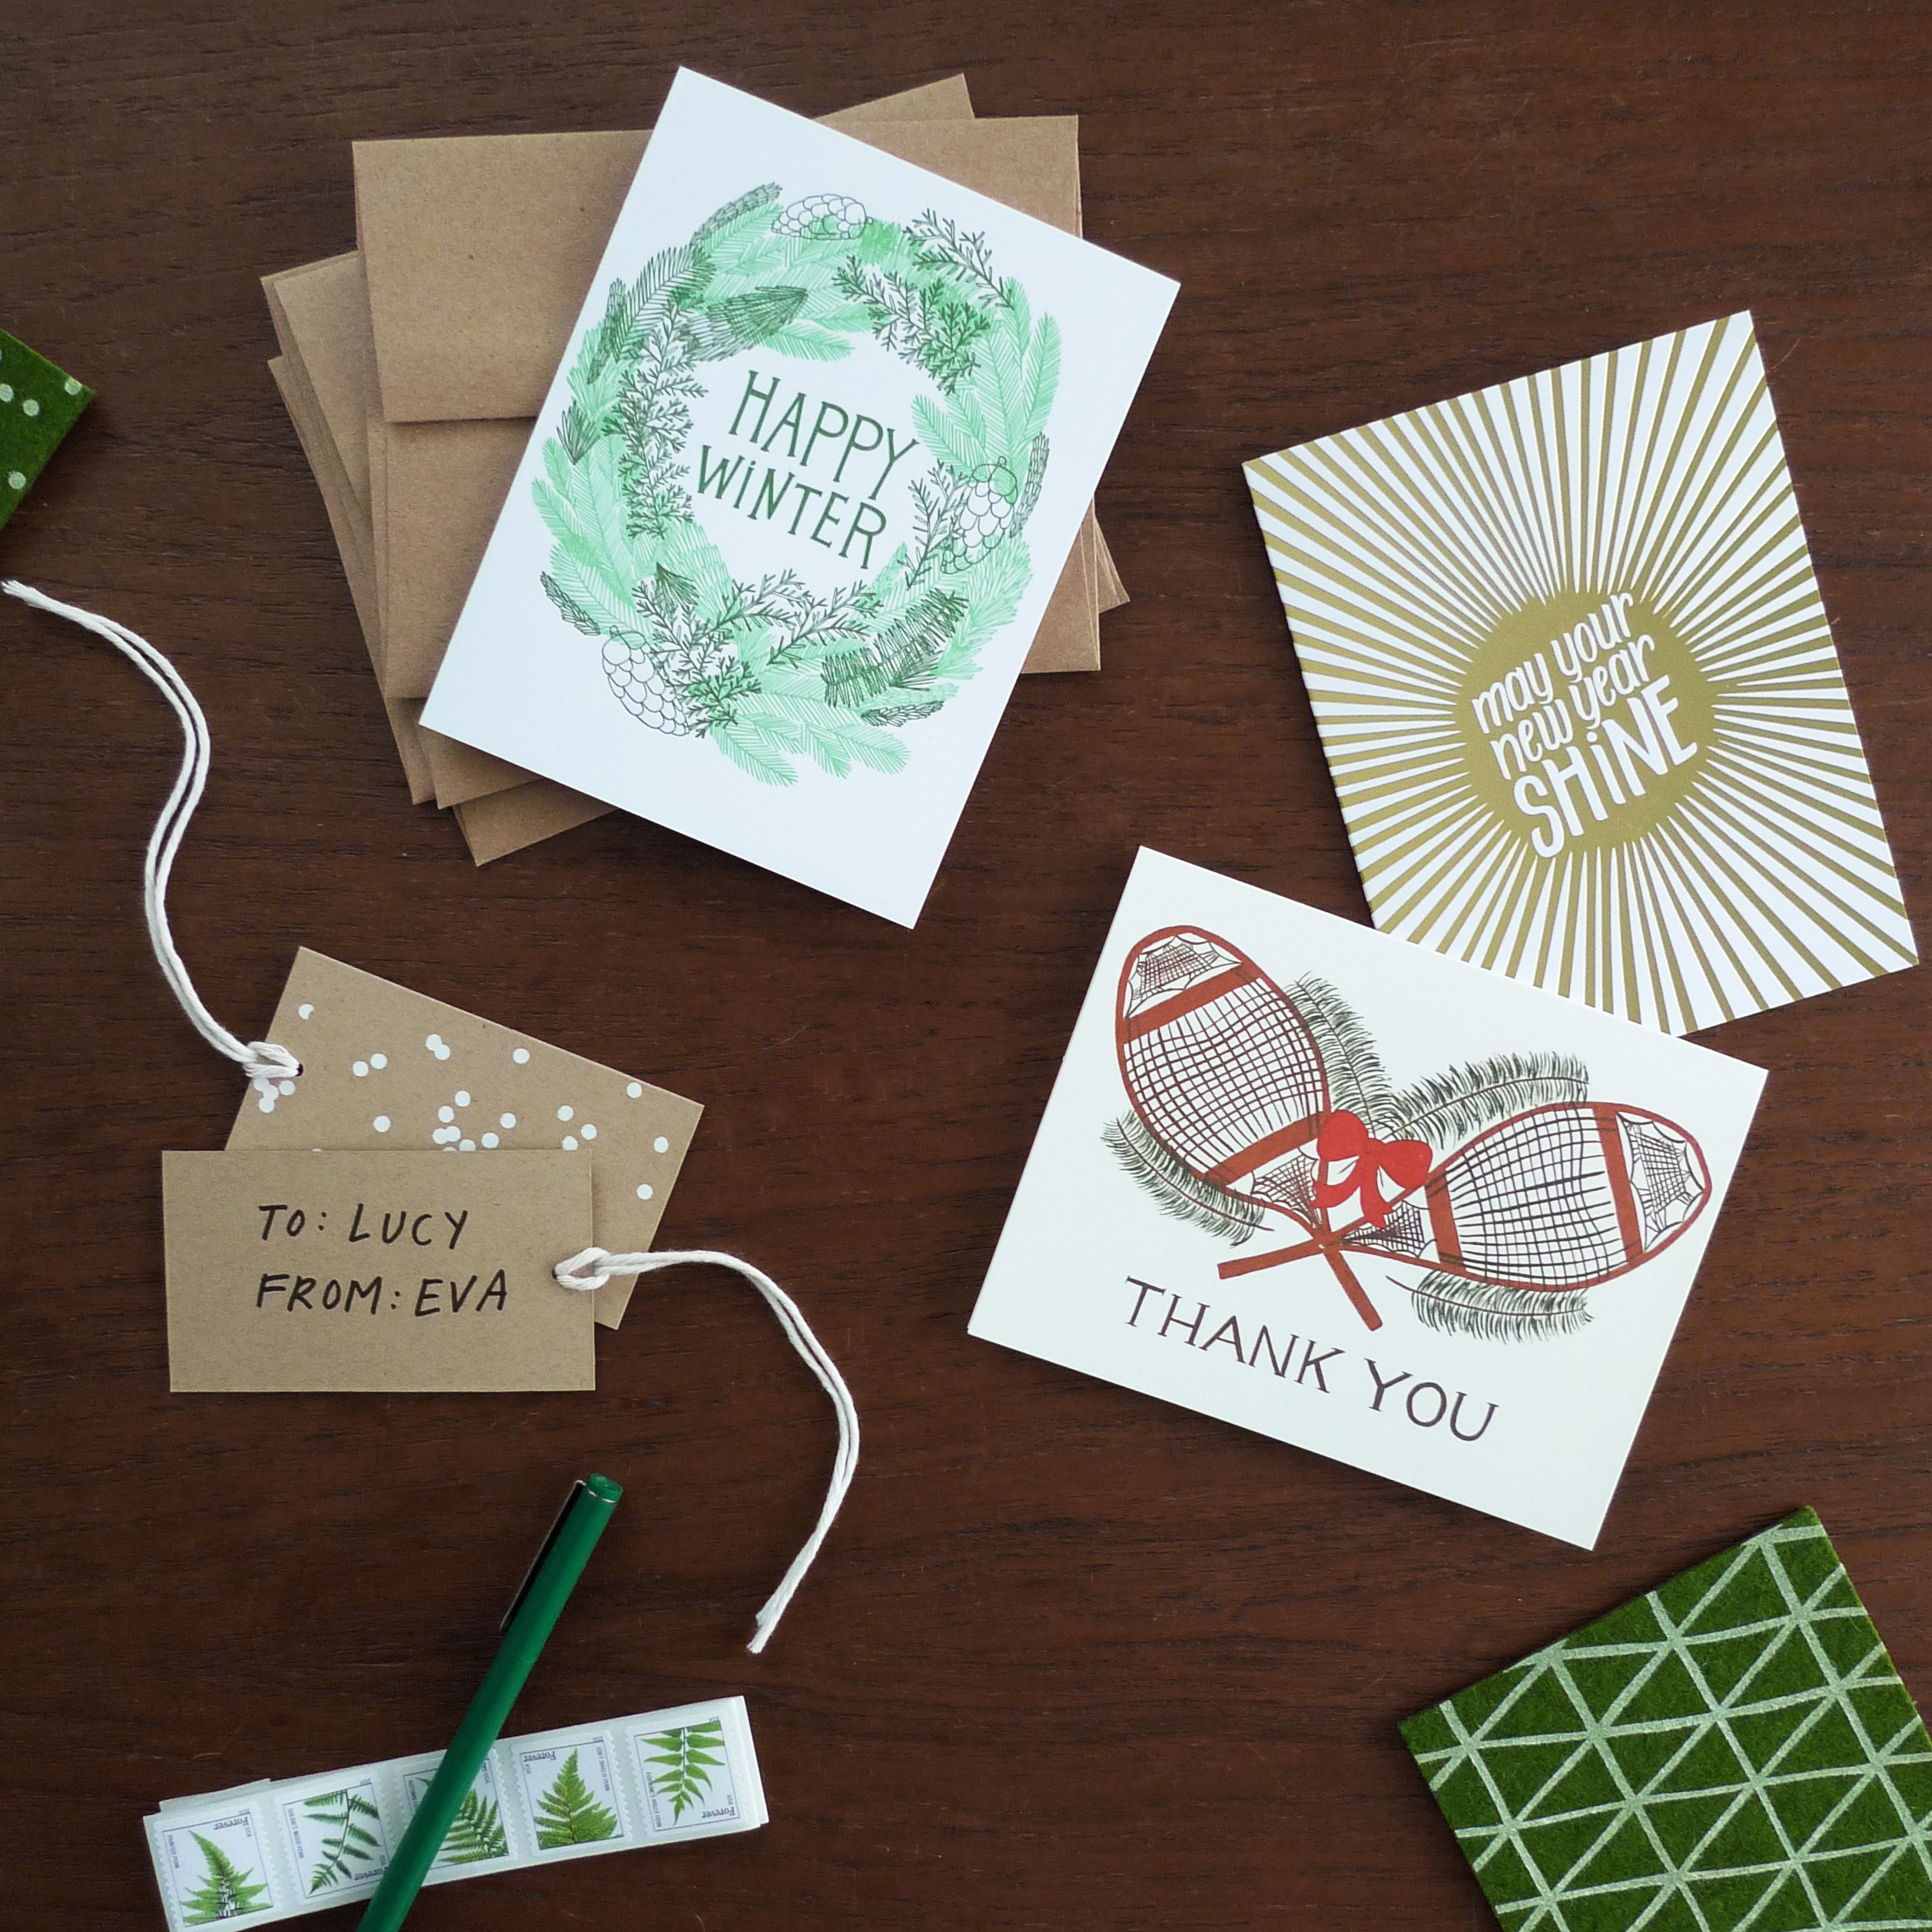 7 Holiday Snail Mail Tips – Blog - Cotton & Flax